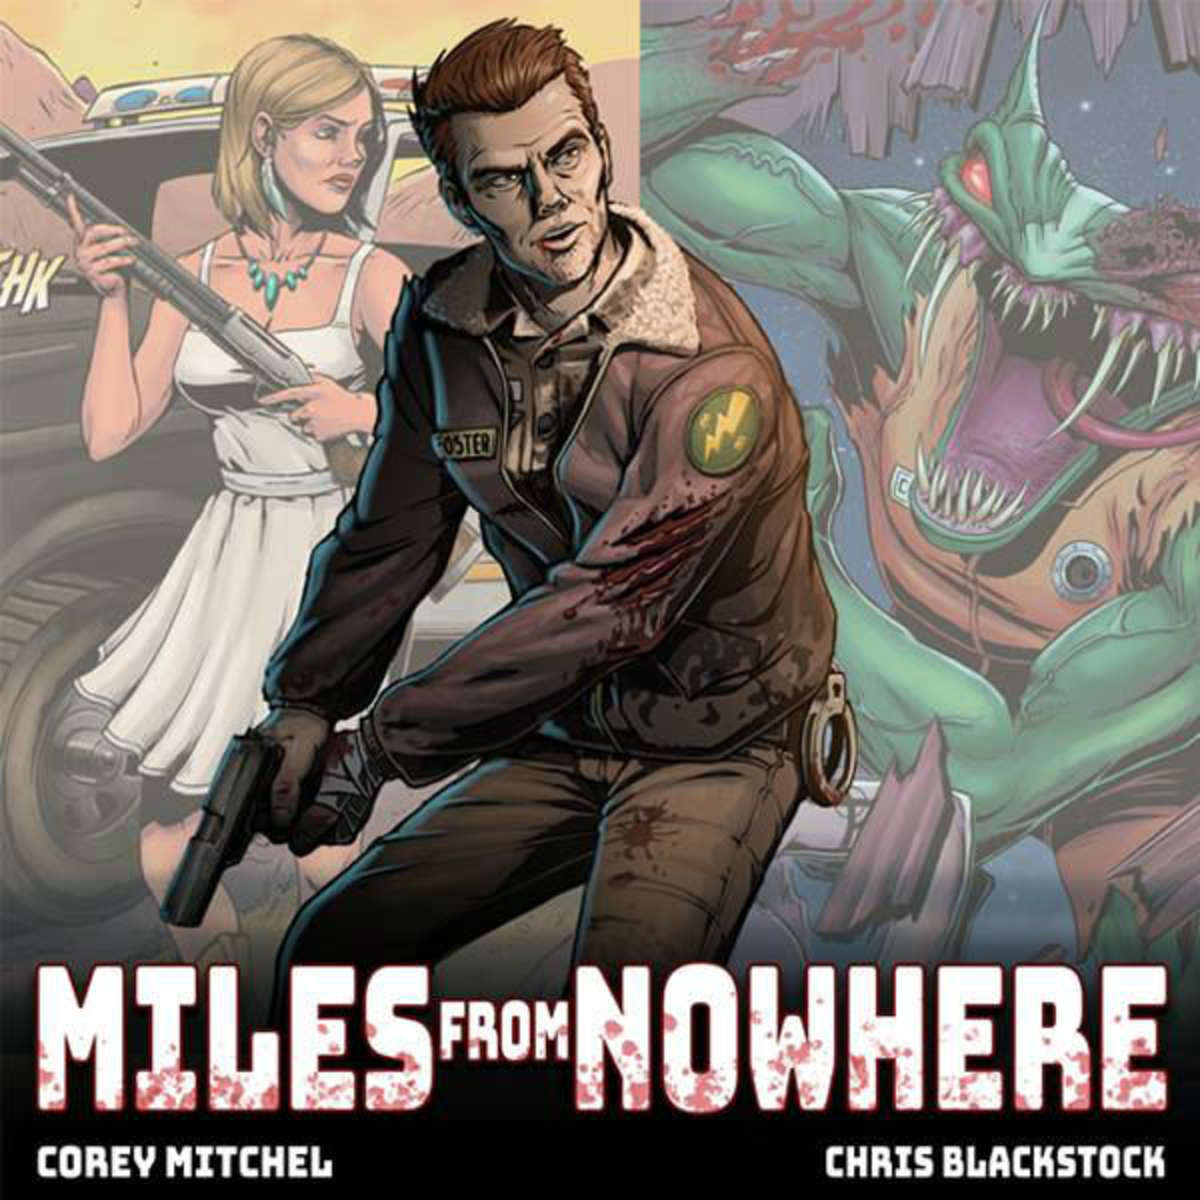 Miles From Nowhere Poster